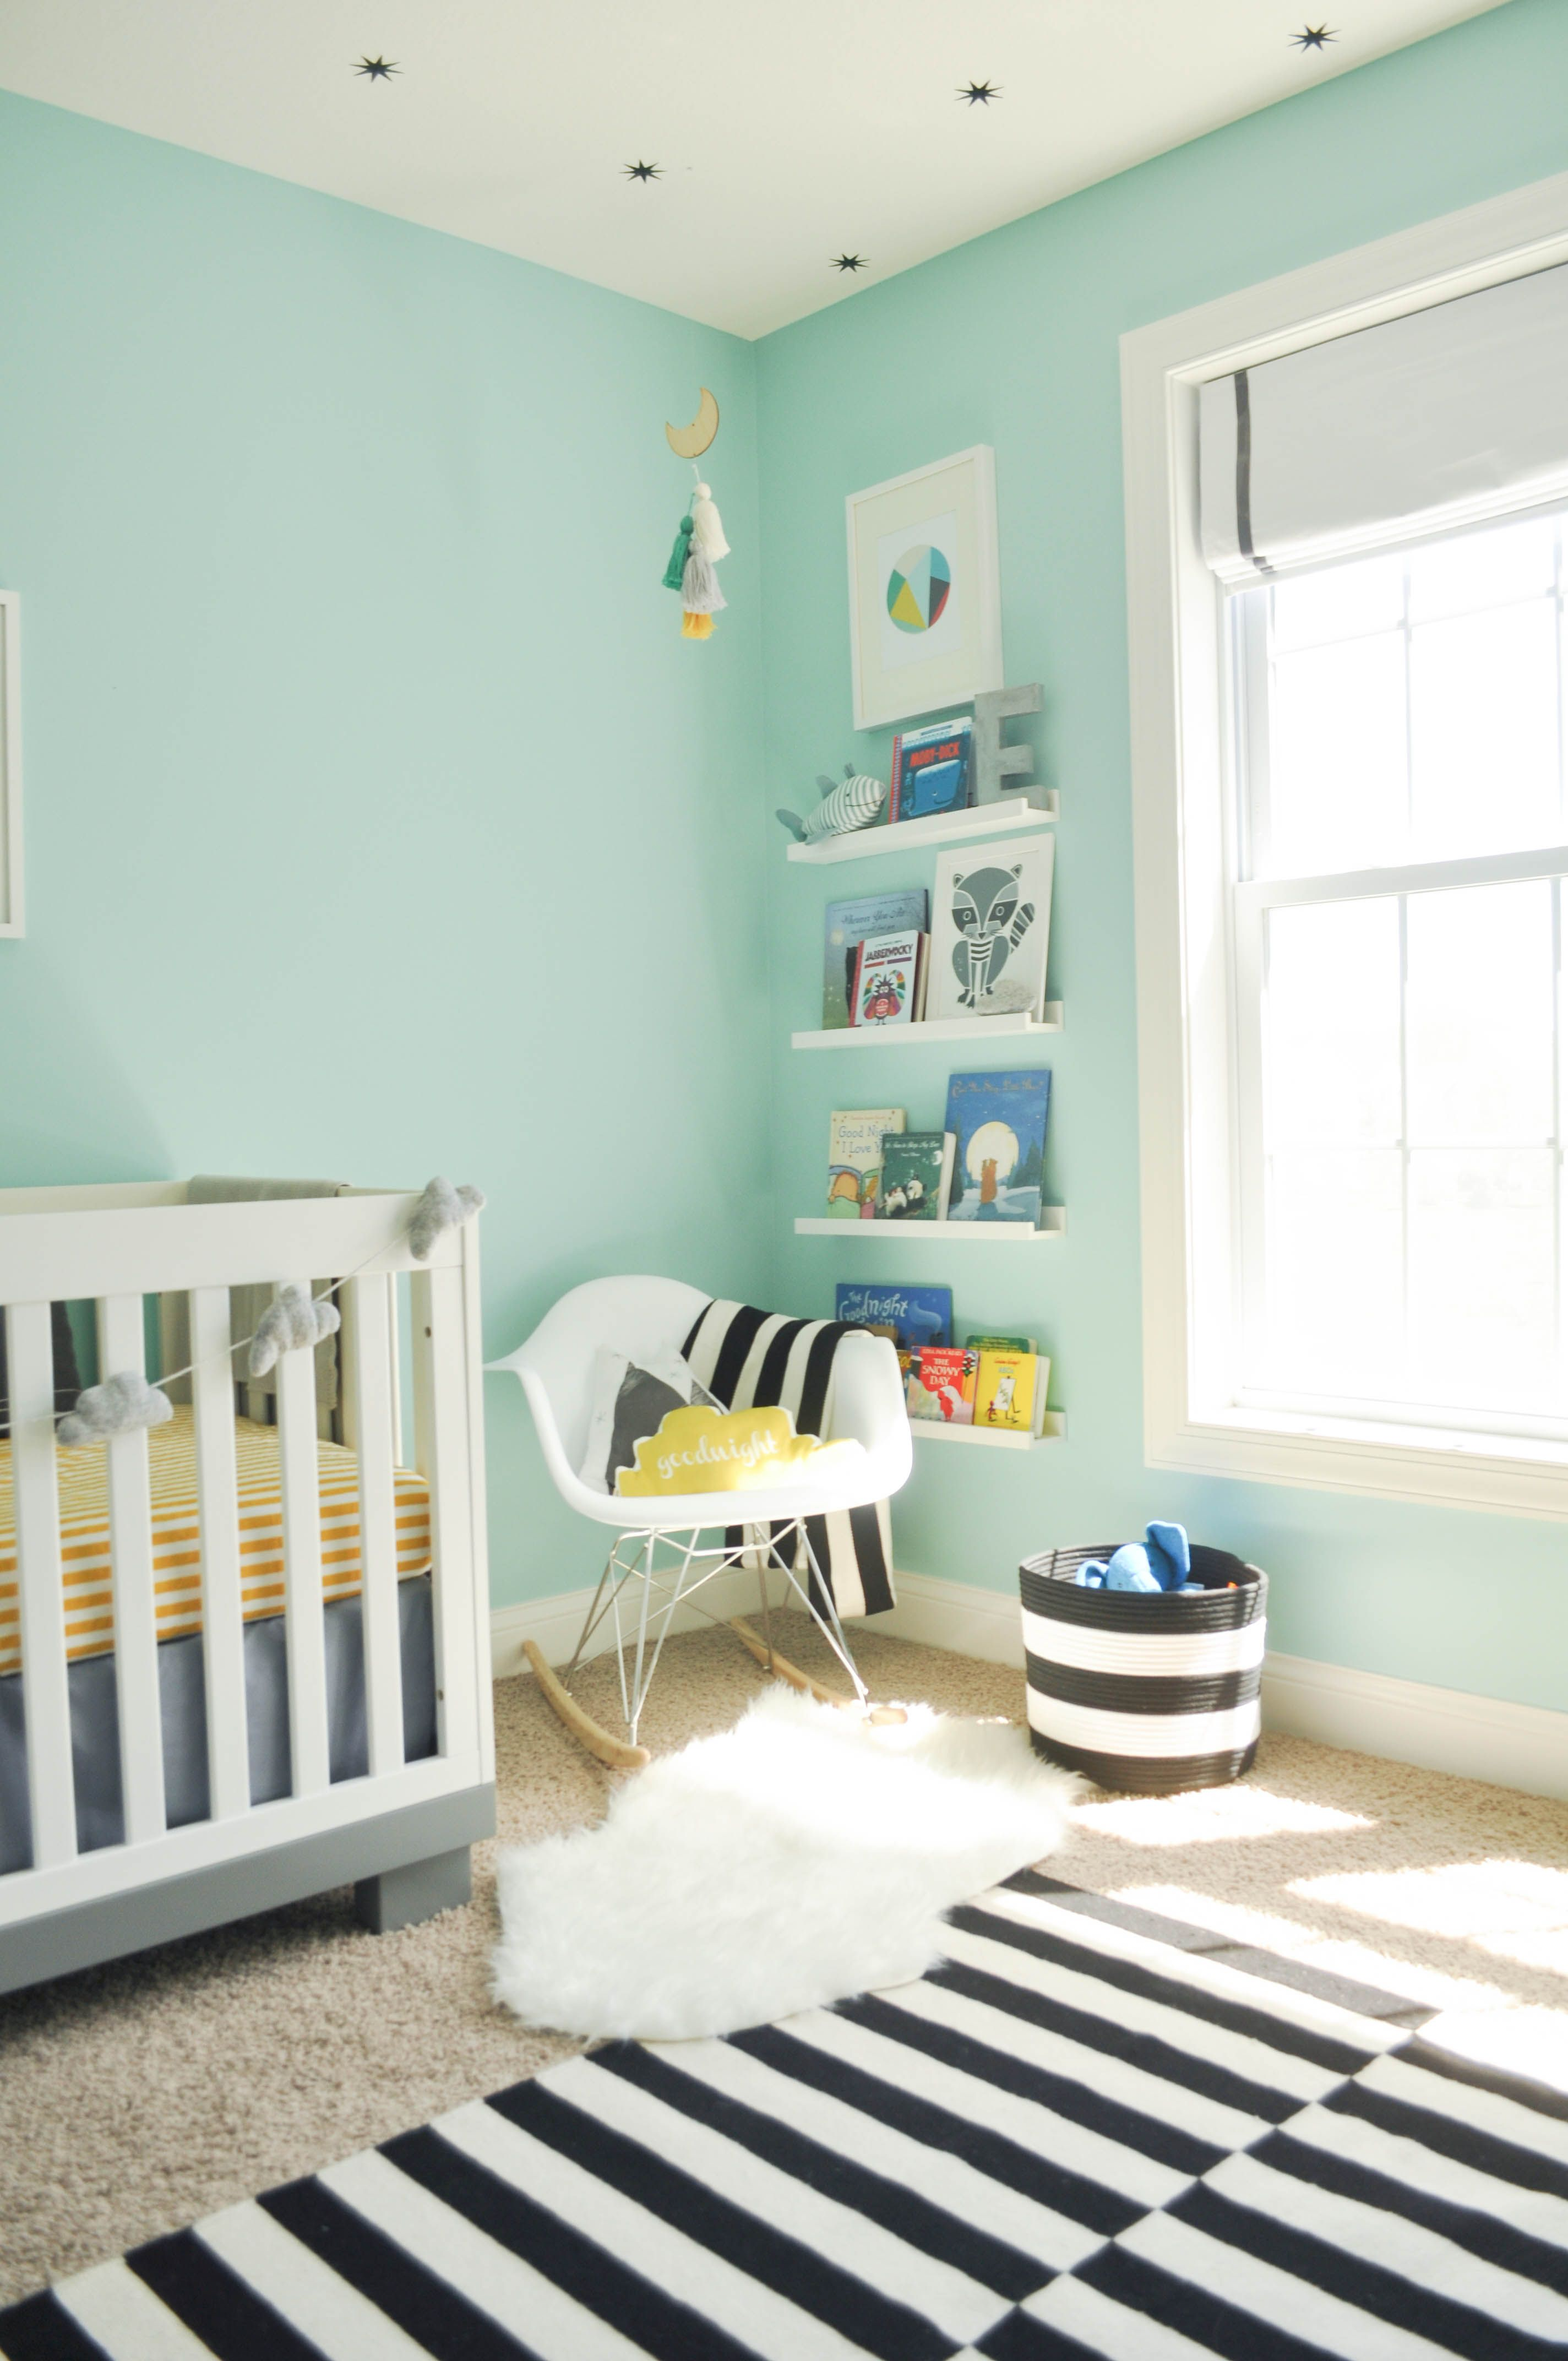 Best Our Industrial Modern Nursery With A Touch Of Whimsy 640 x 480